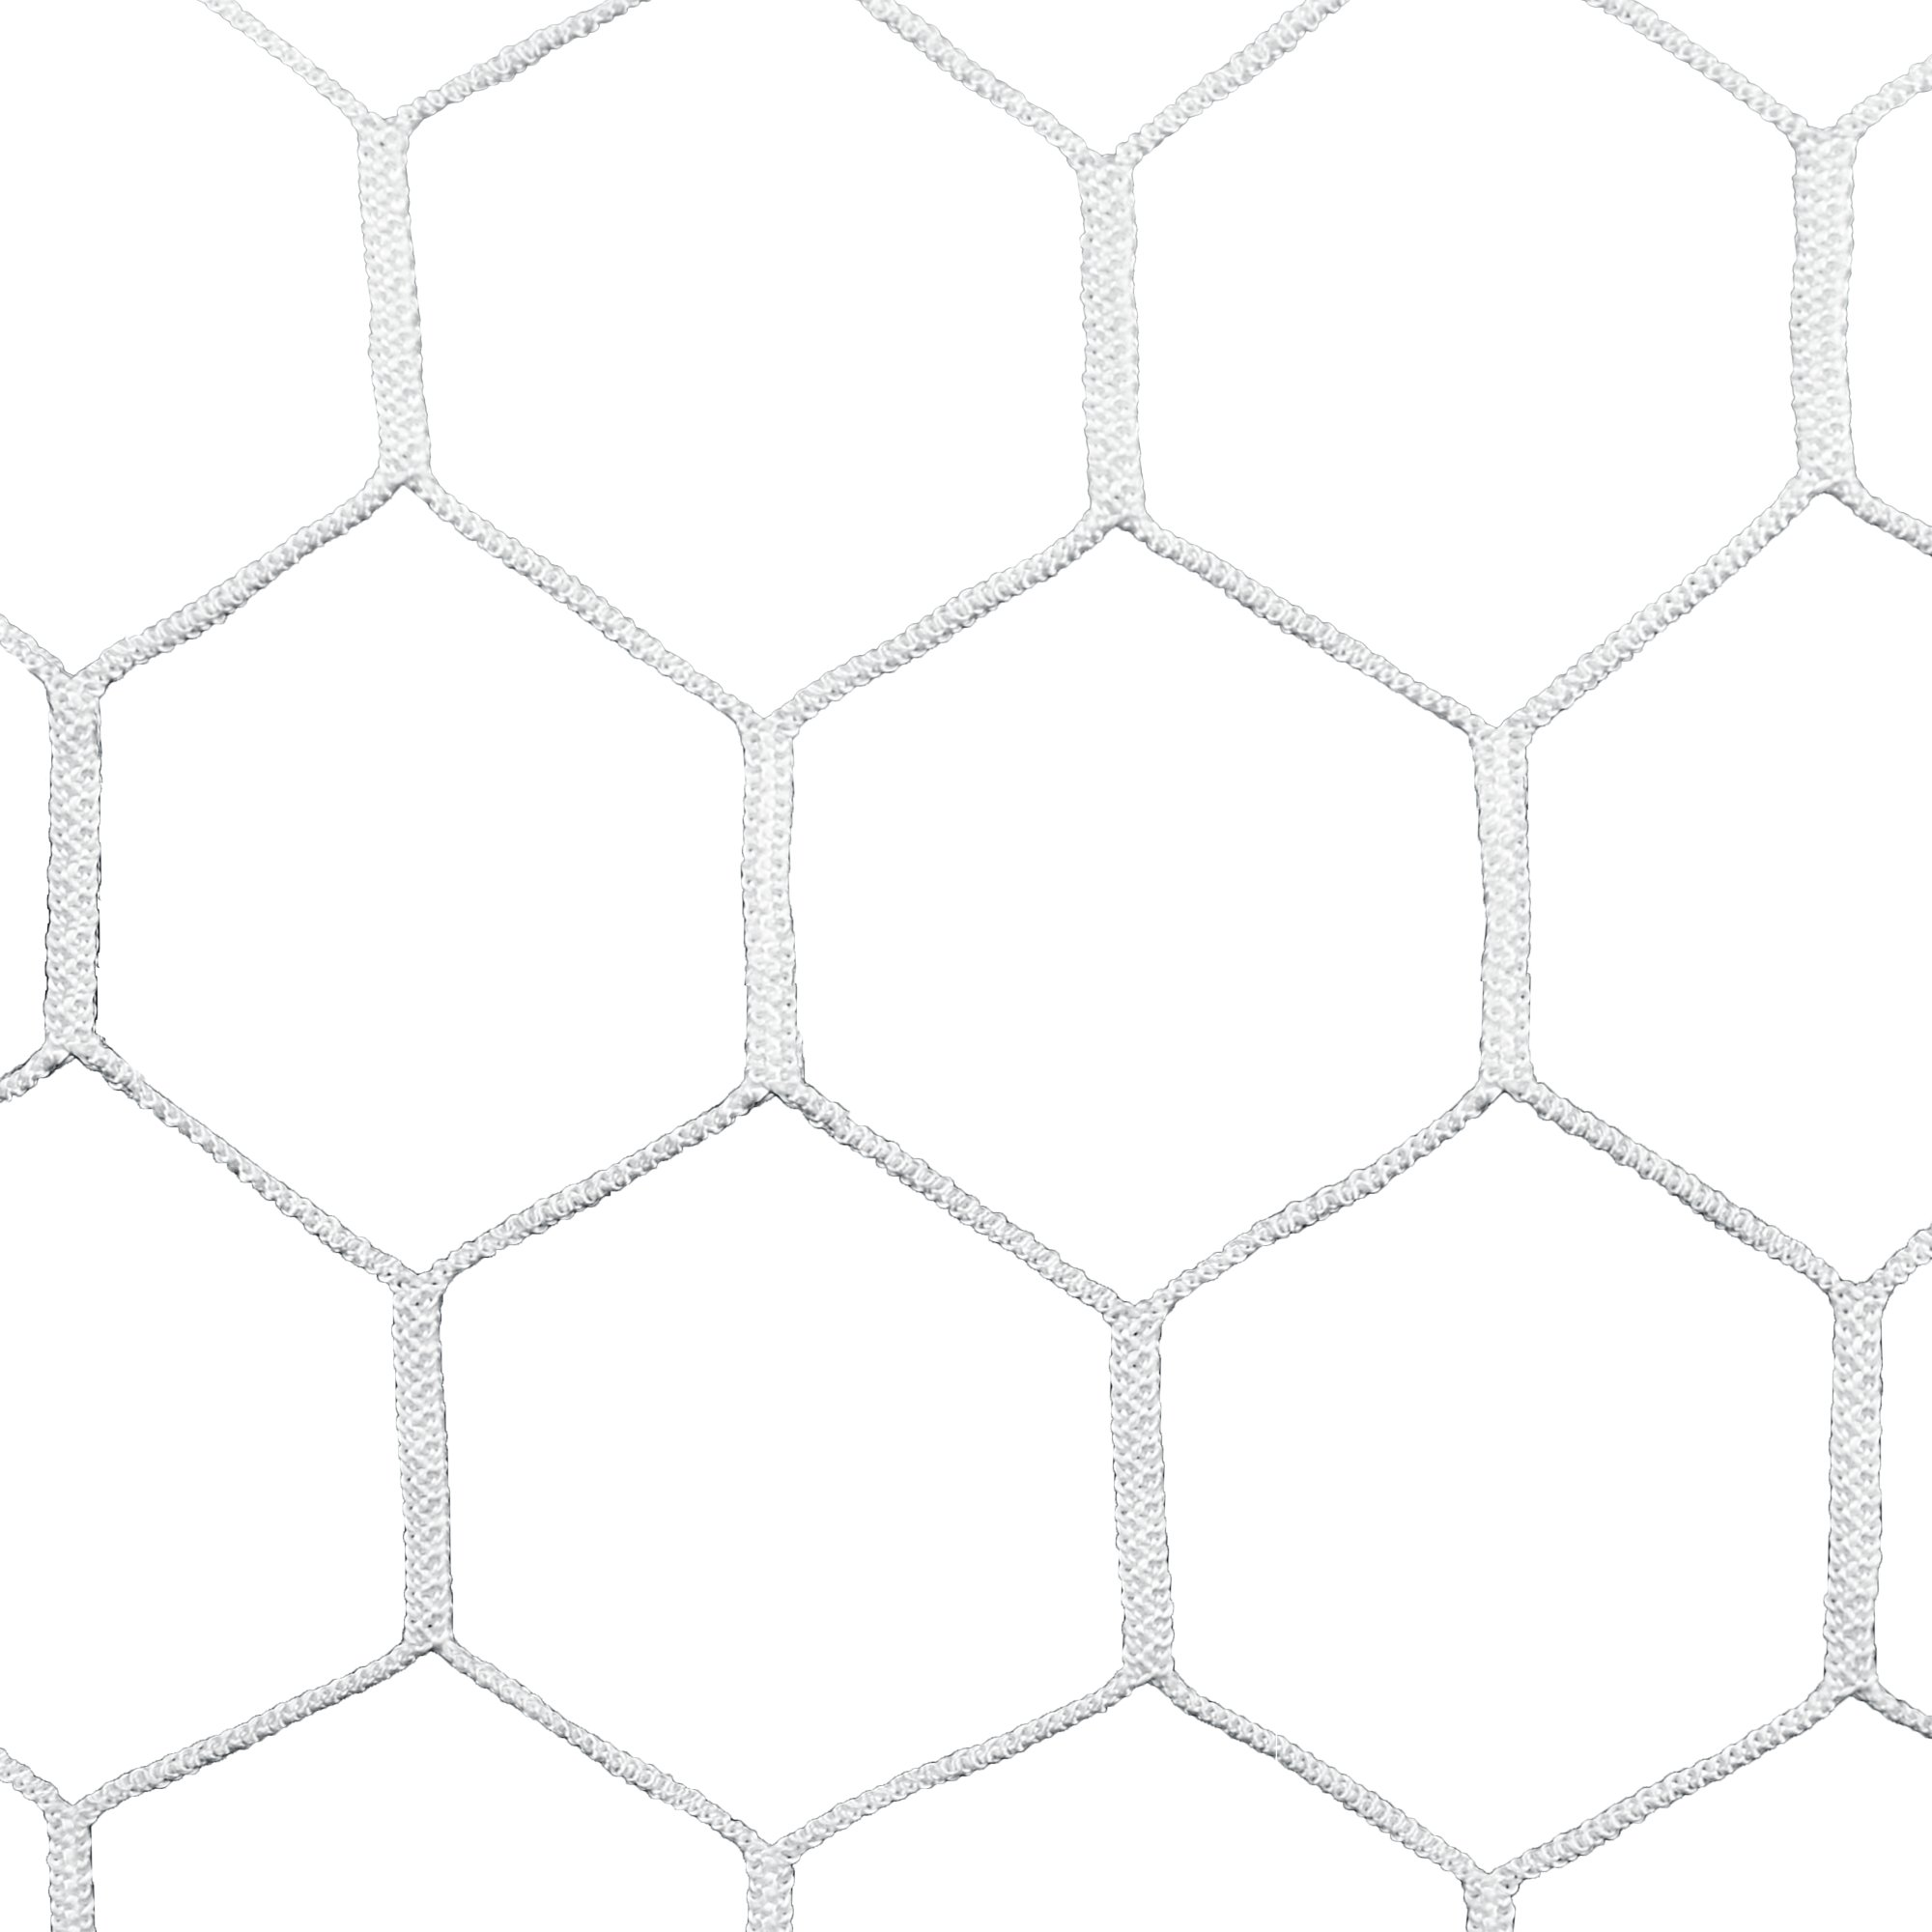 Agora 4mm HTPP Nets for 8'x24' Soccer Goals With Depth (Each) by AGORA